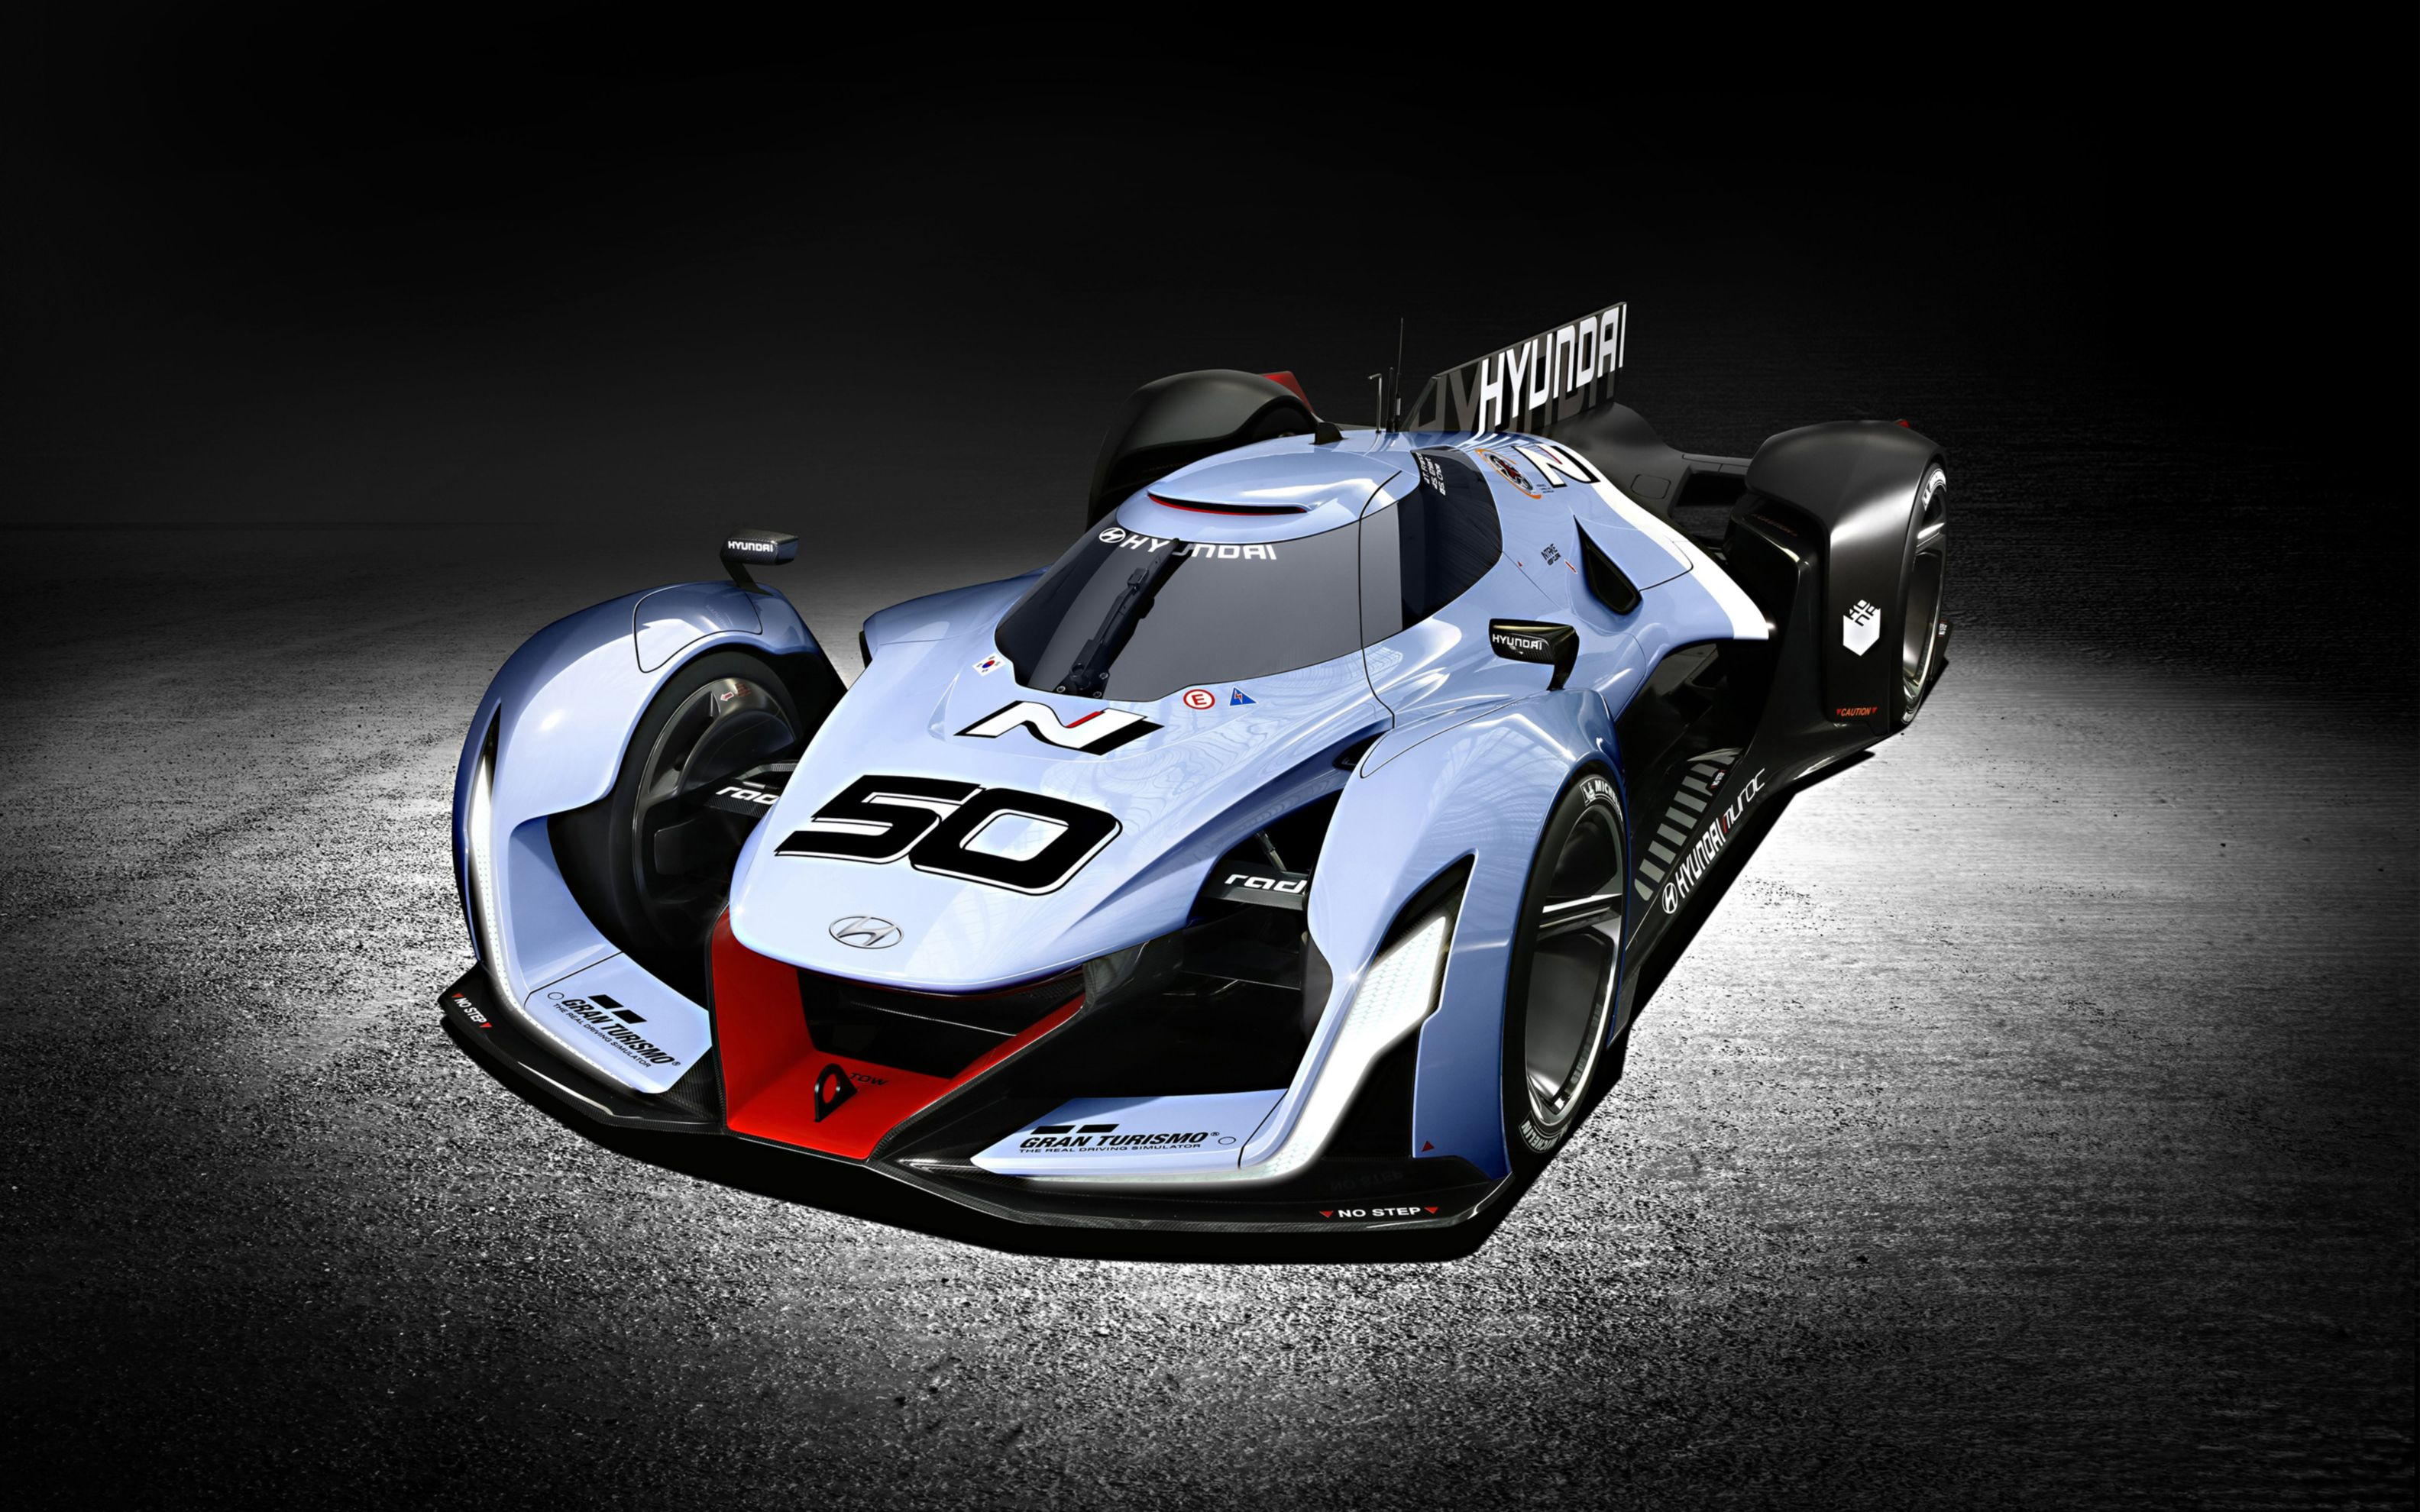 Download free HD 2015 Hyundai N 2025 Vision Gran Turismo Wide Wallpaper, image